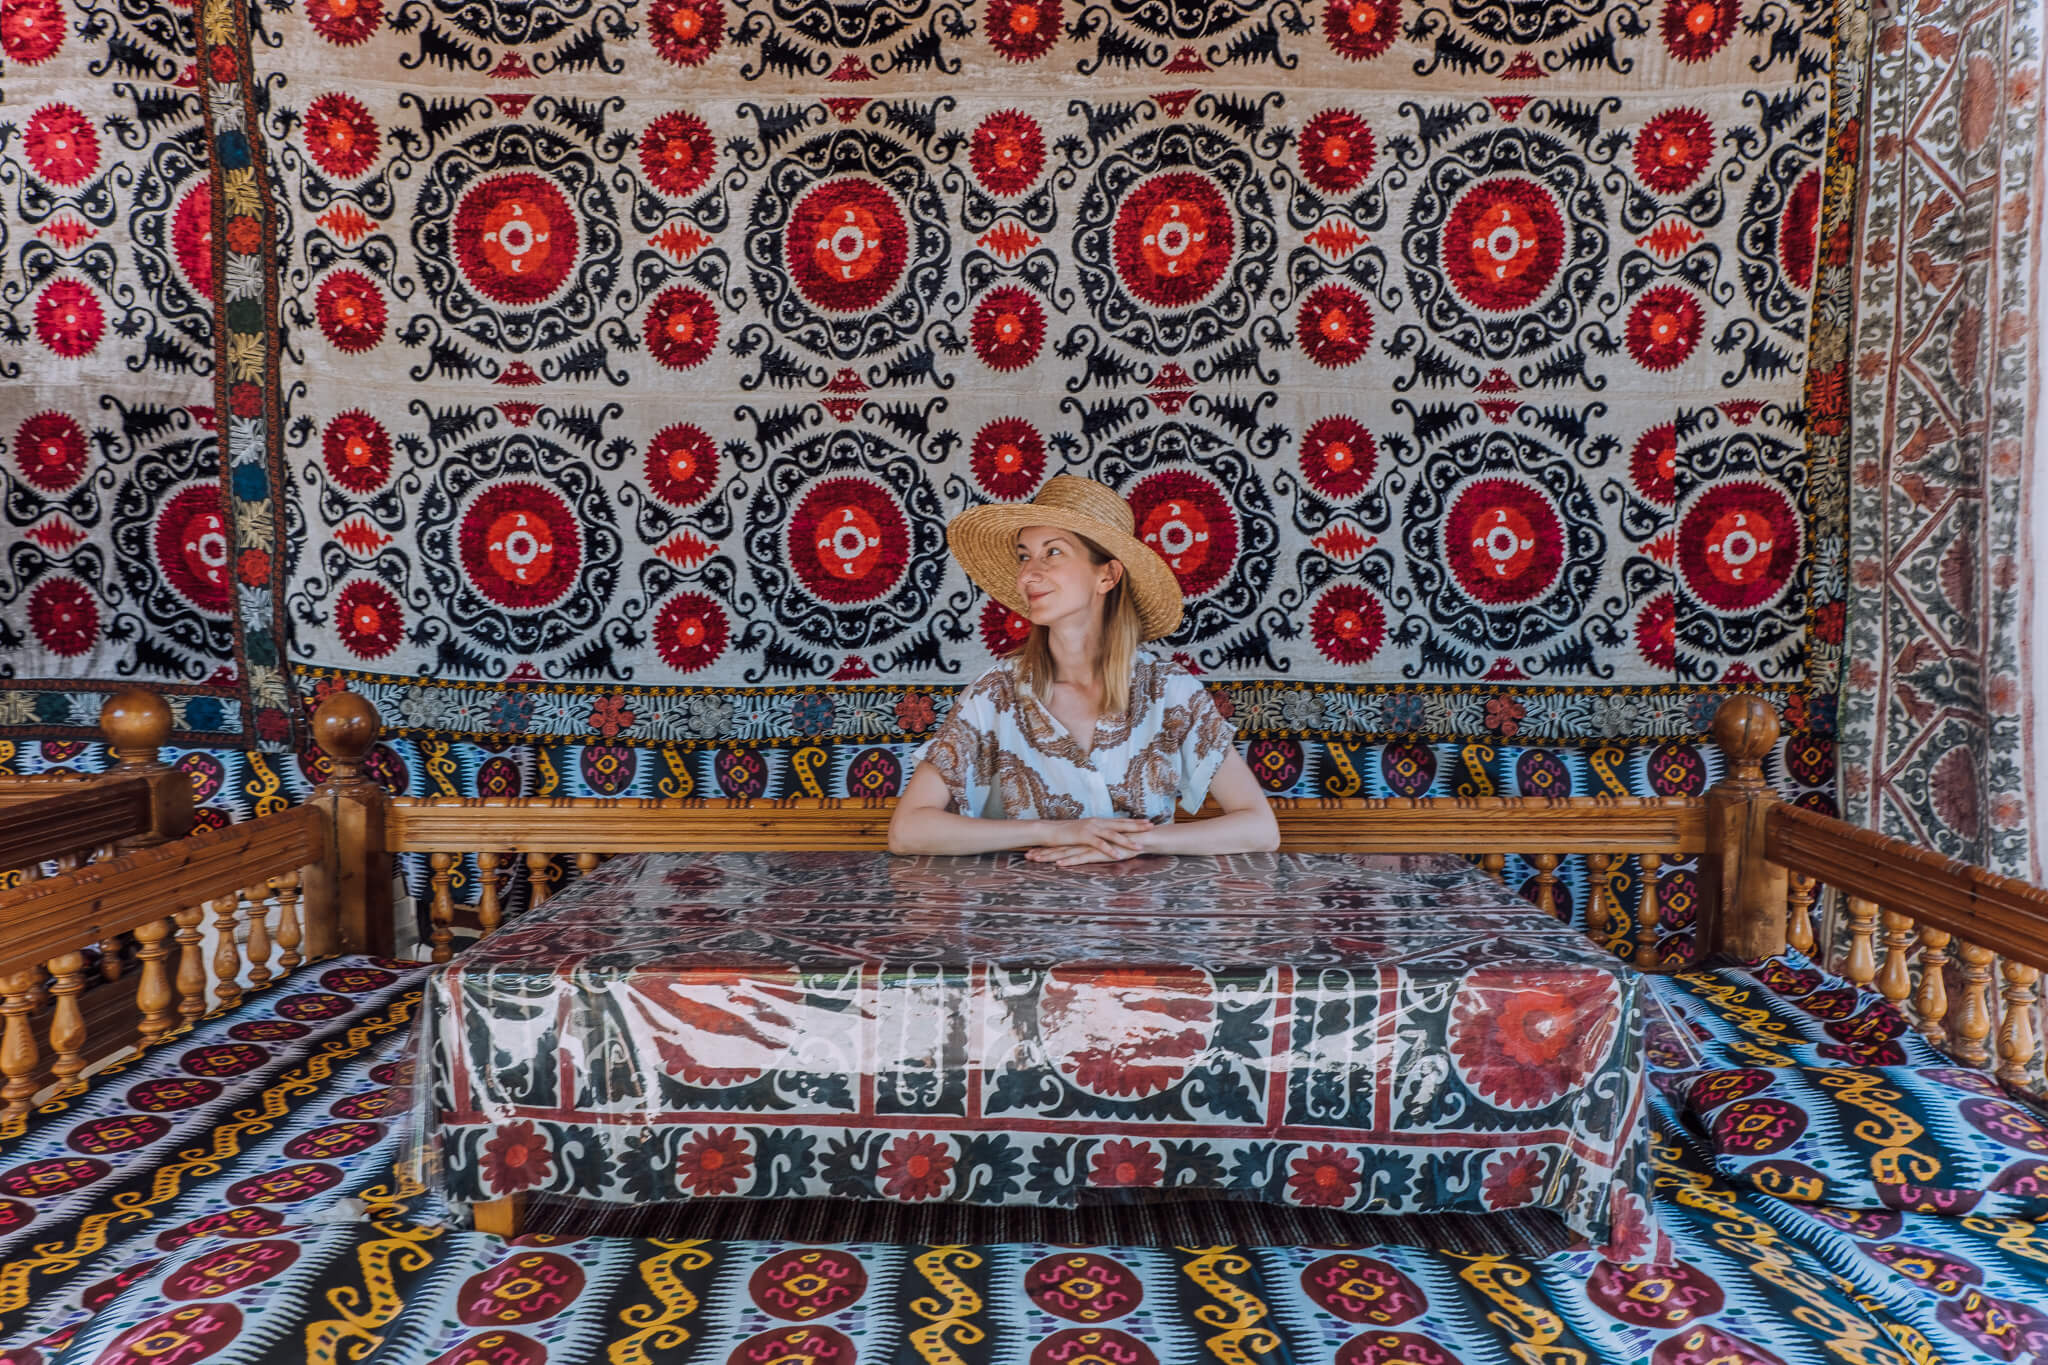 Most restaurants are decorated with beautiful Uzbek patterns